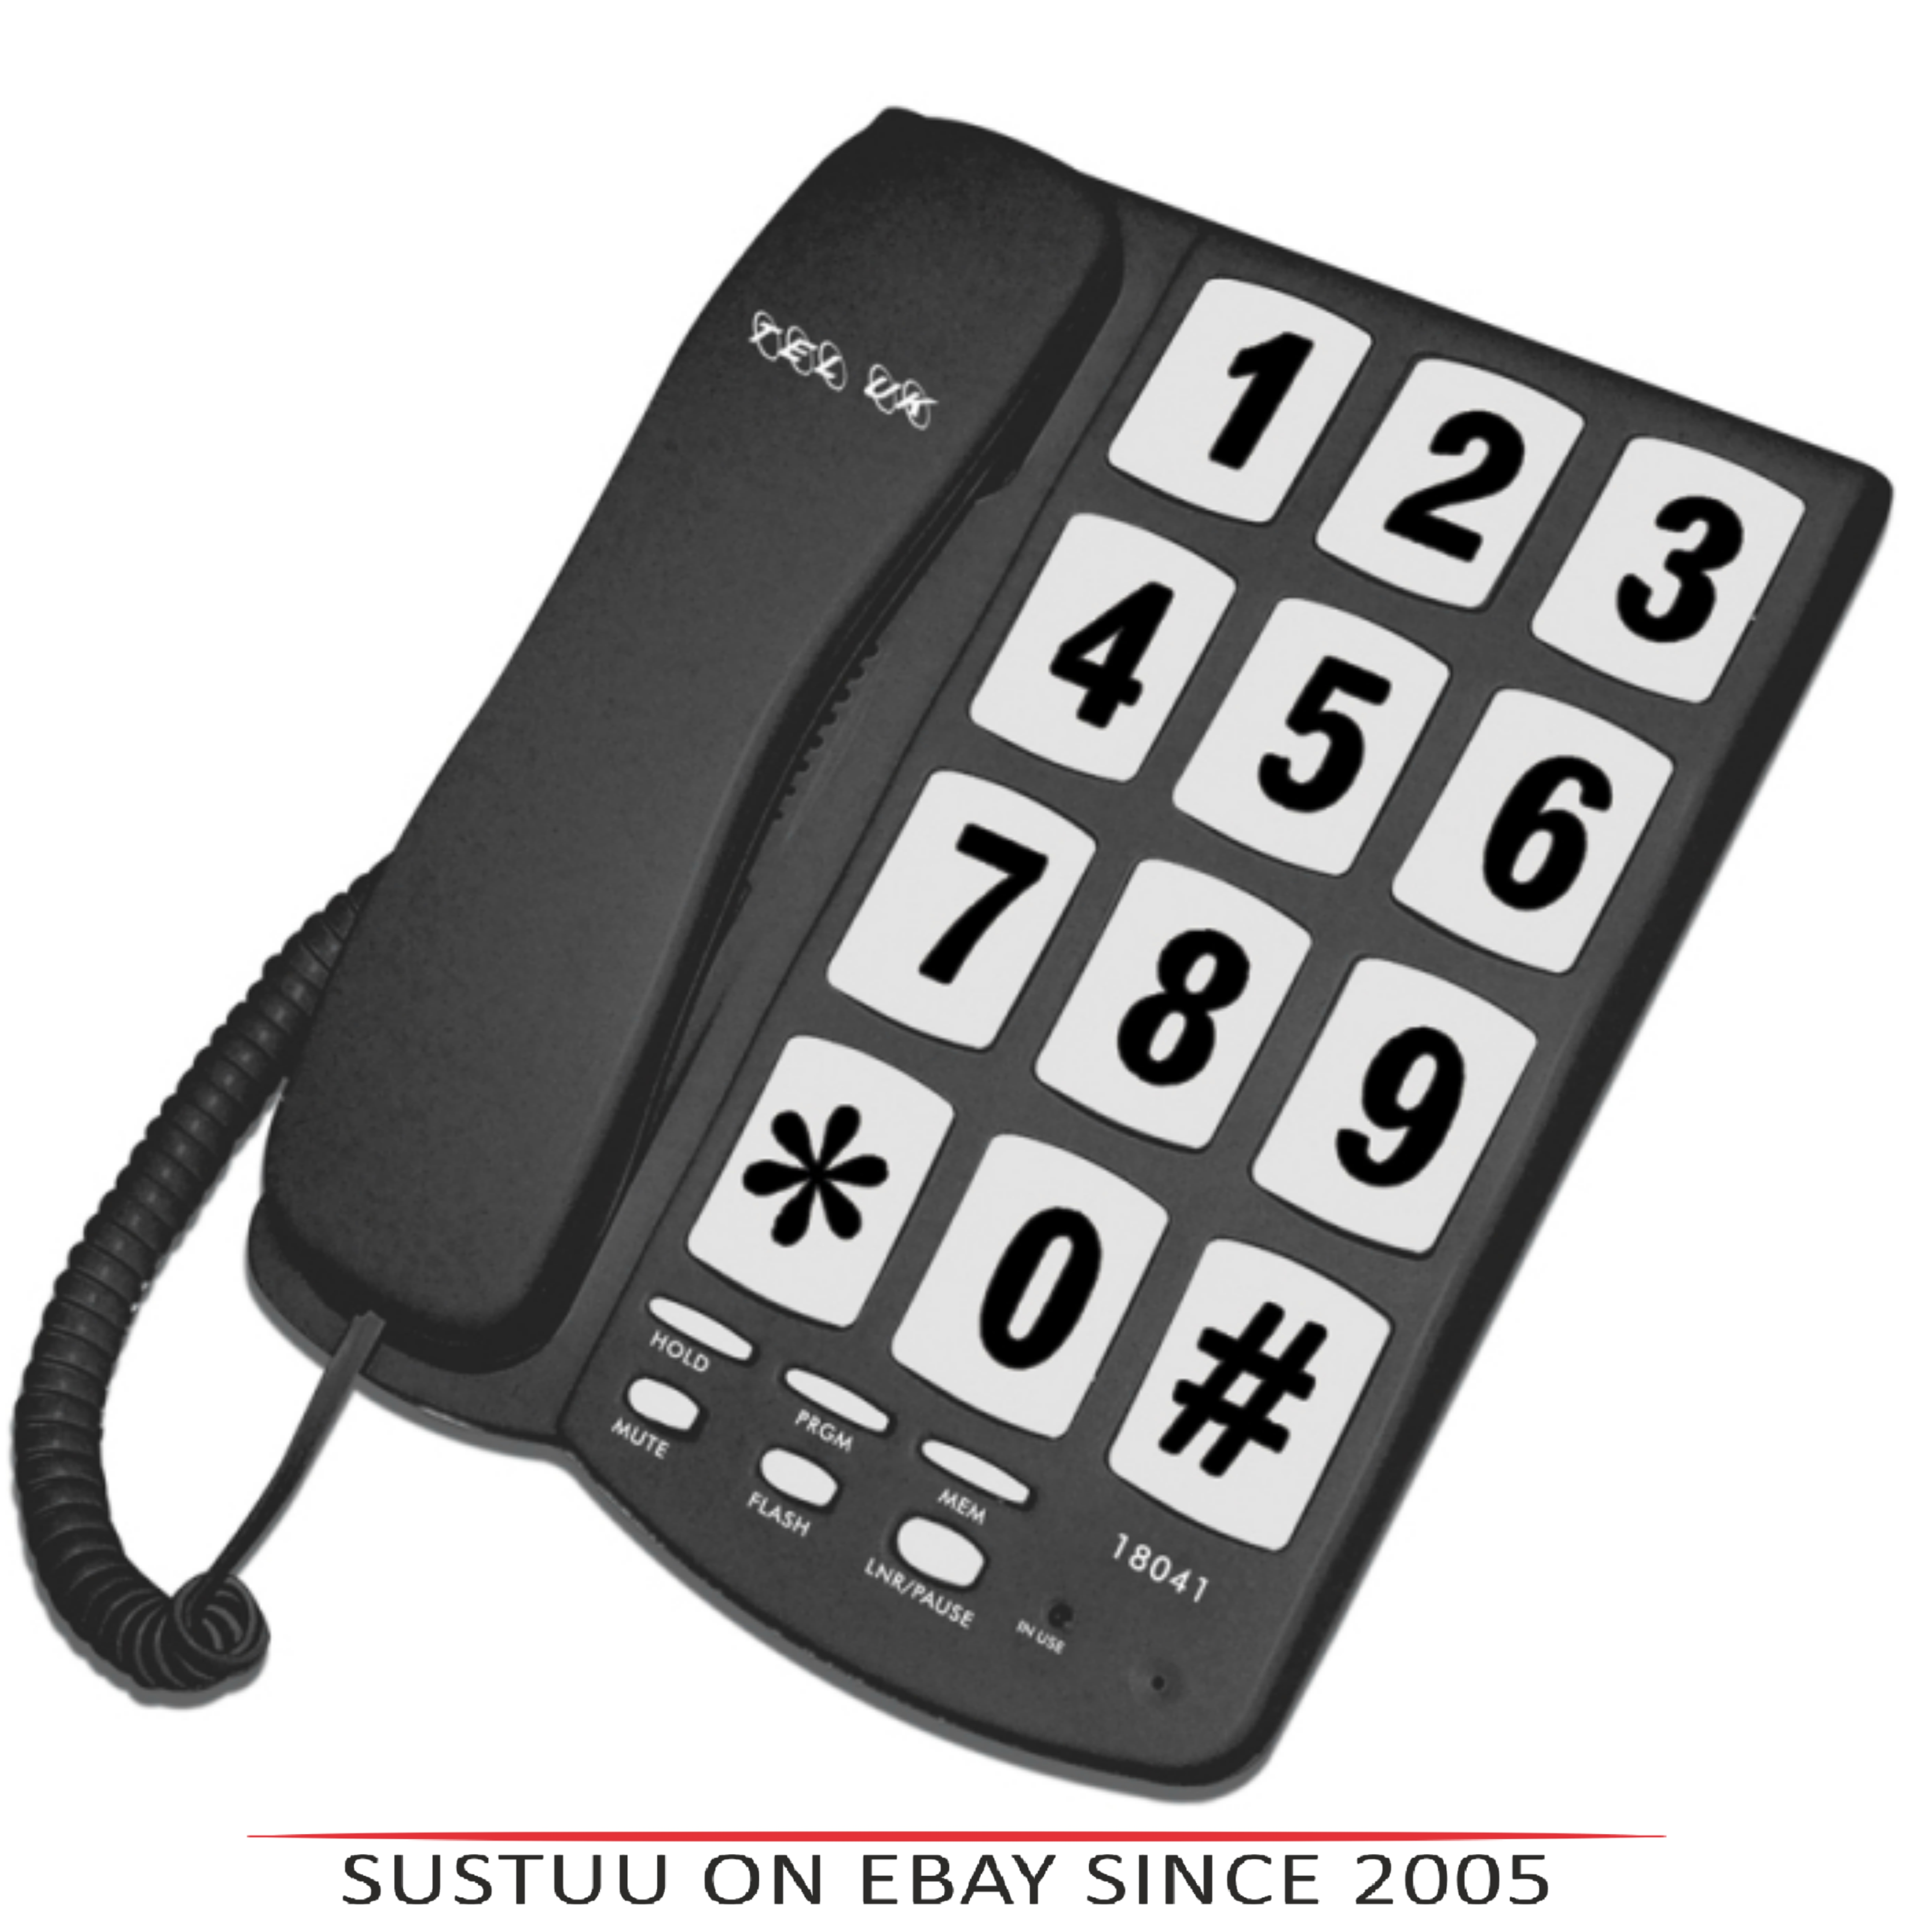 Tel UK 18041B Big Button Telephone New Yorker|Wall Mountable|Mute|Flash|Black|